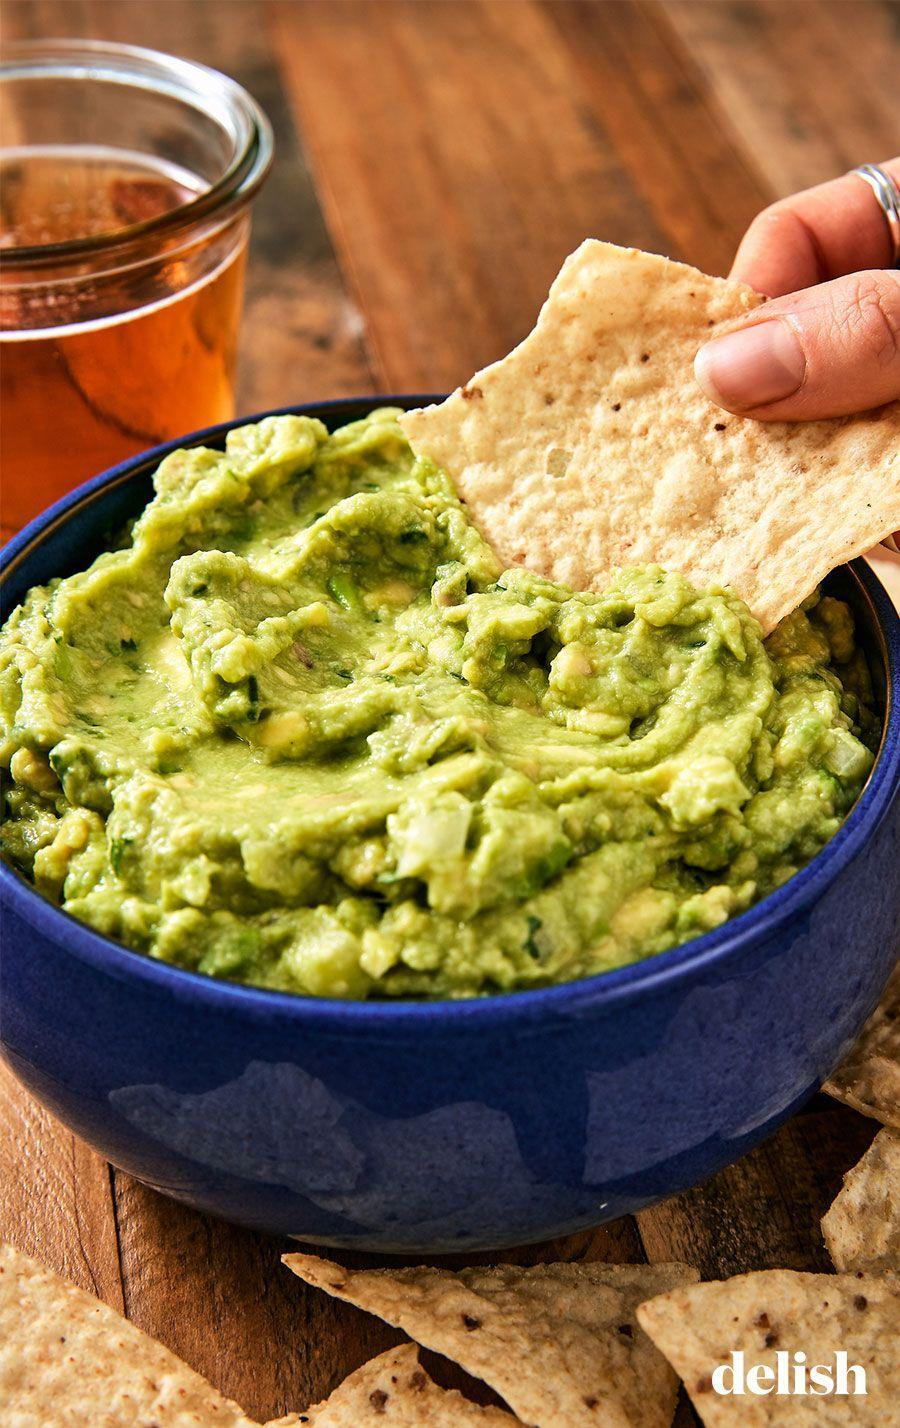 """<p>It's not a proper game day without chips and guac.</p><p>Get the recipe from <a href=""""https://www.delish.com/cooking/recipe-ideas/recipes/a45570/best-ever-guacamole-recipe/"""" rel=""""nofollow noopener"""" target=""""_blank"""" data-ylk=""""slk:Delish"""" class=""""link rapid-noclick-resp"""">Delish</a>. </p>"""